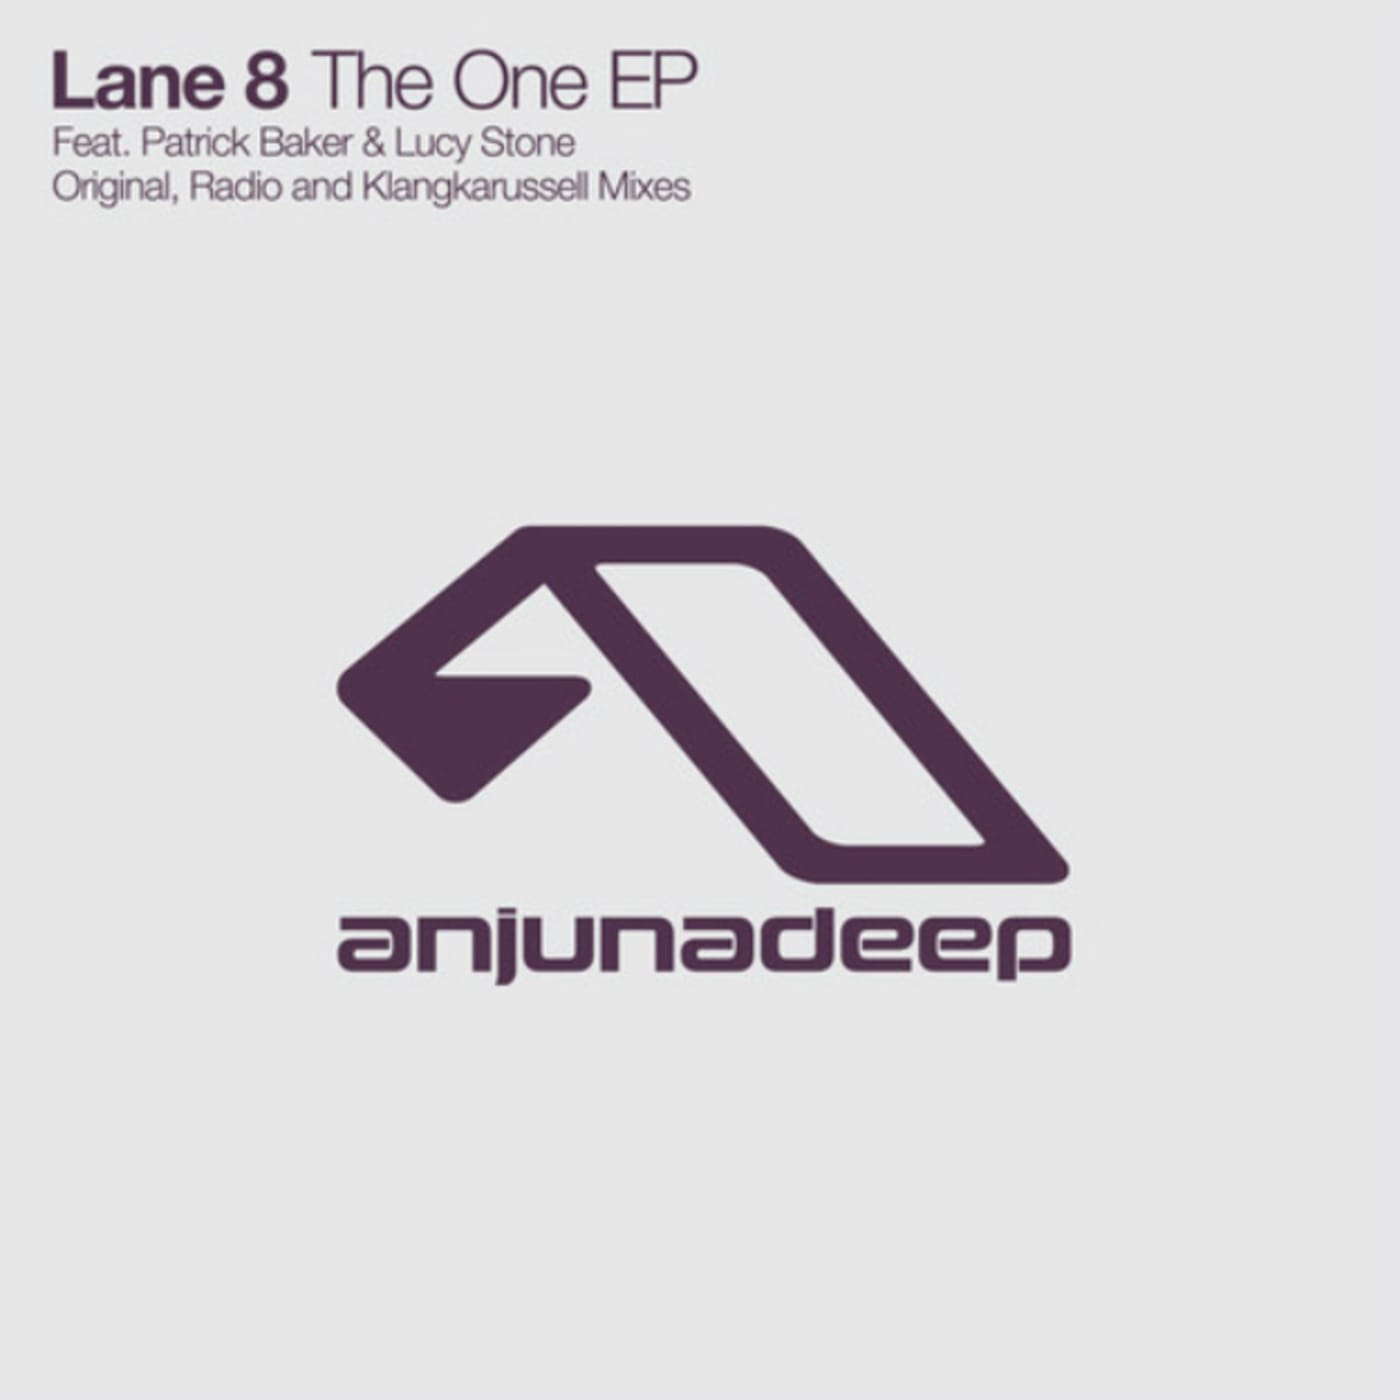 lane 8 the one ep